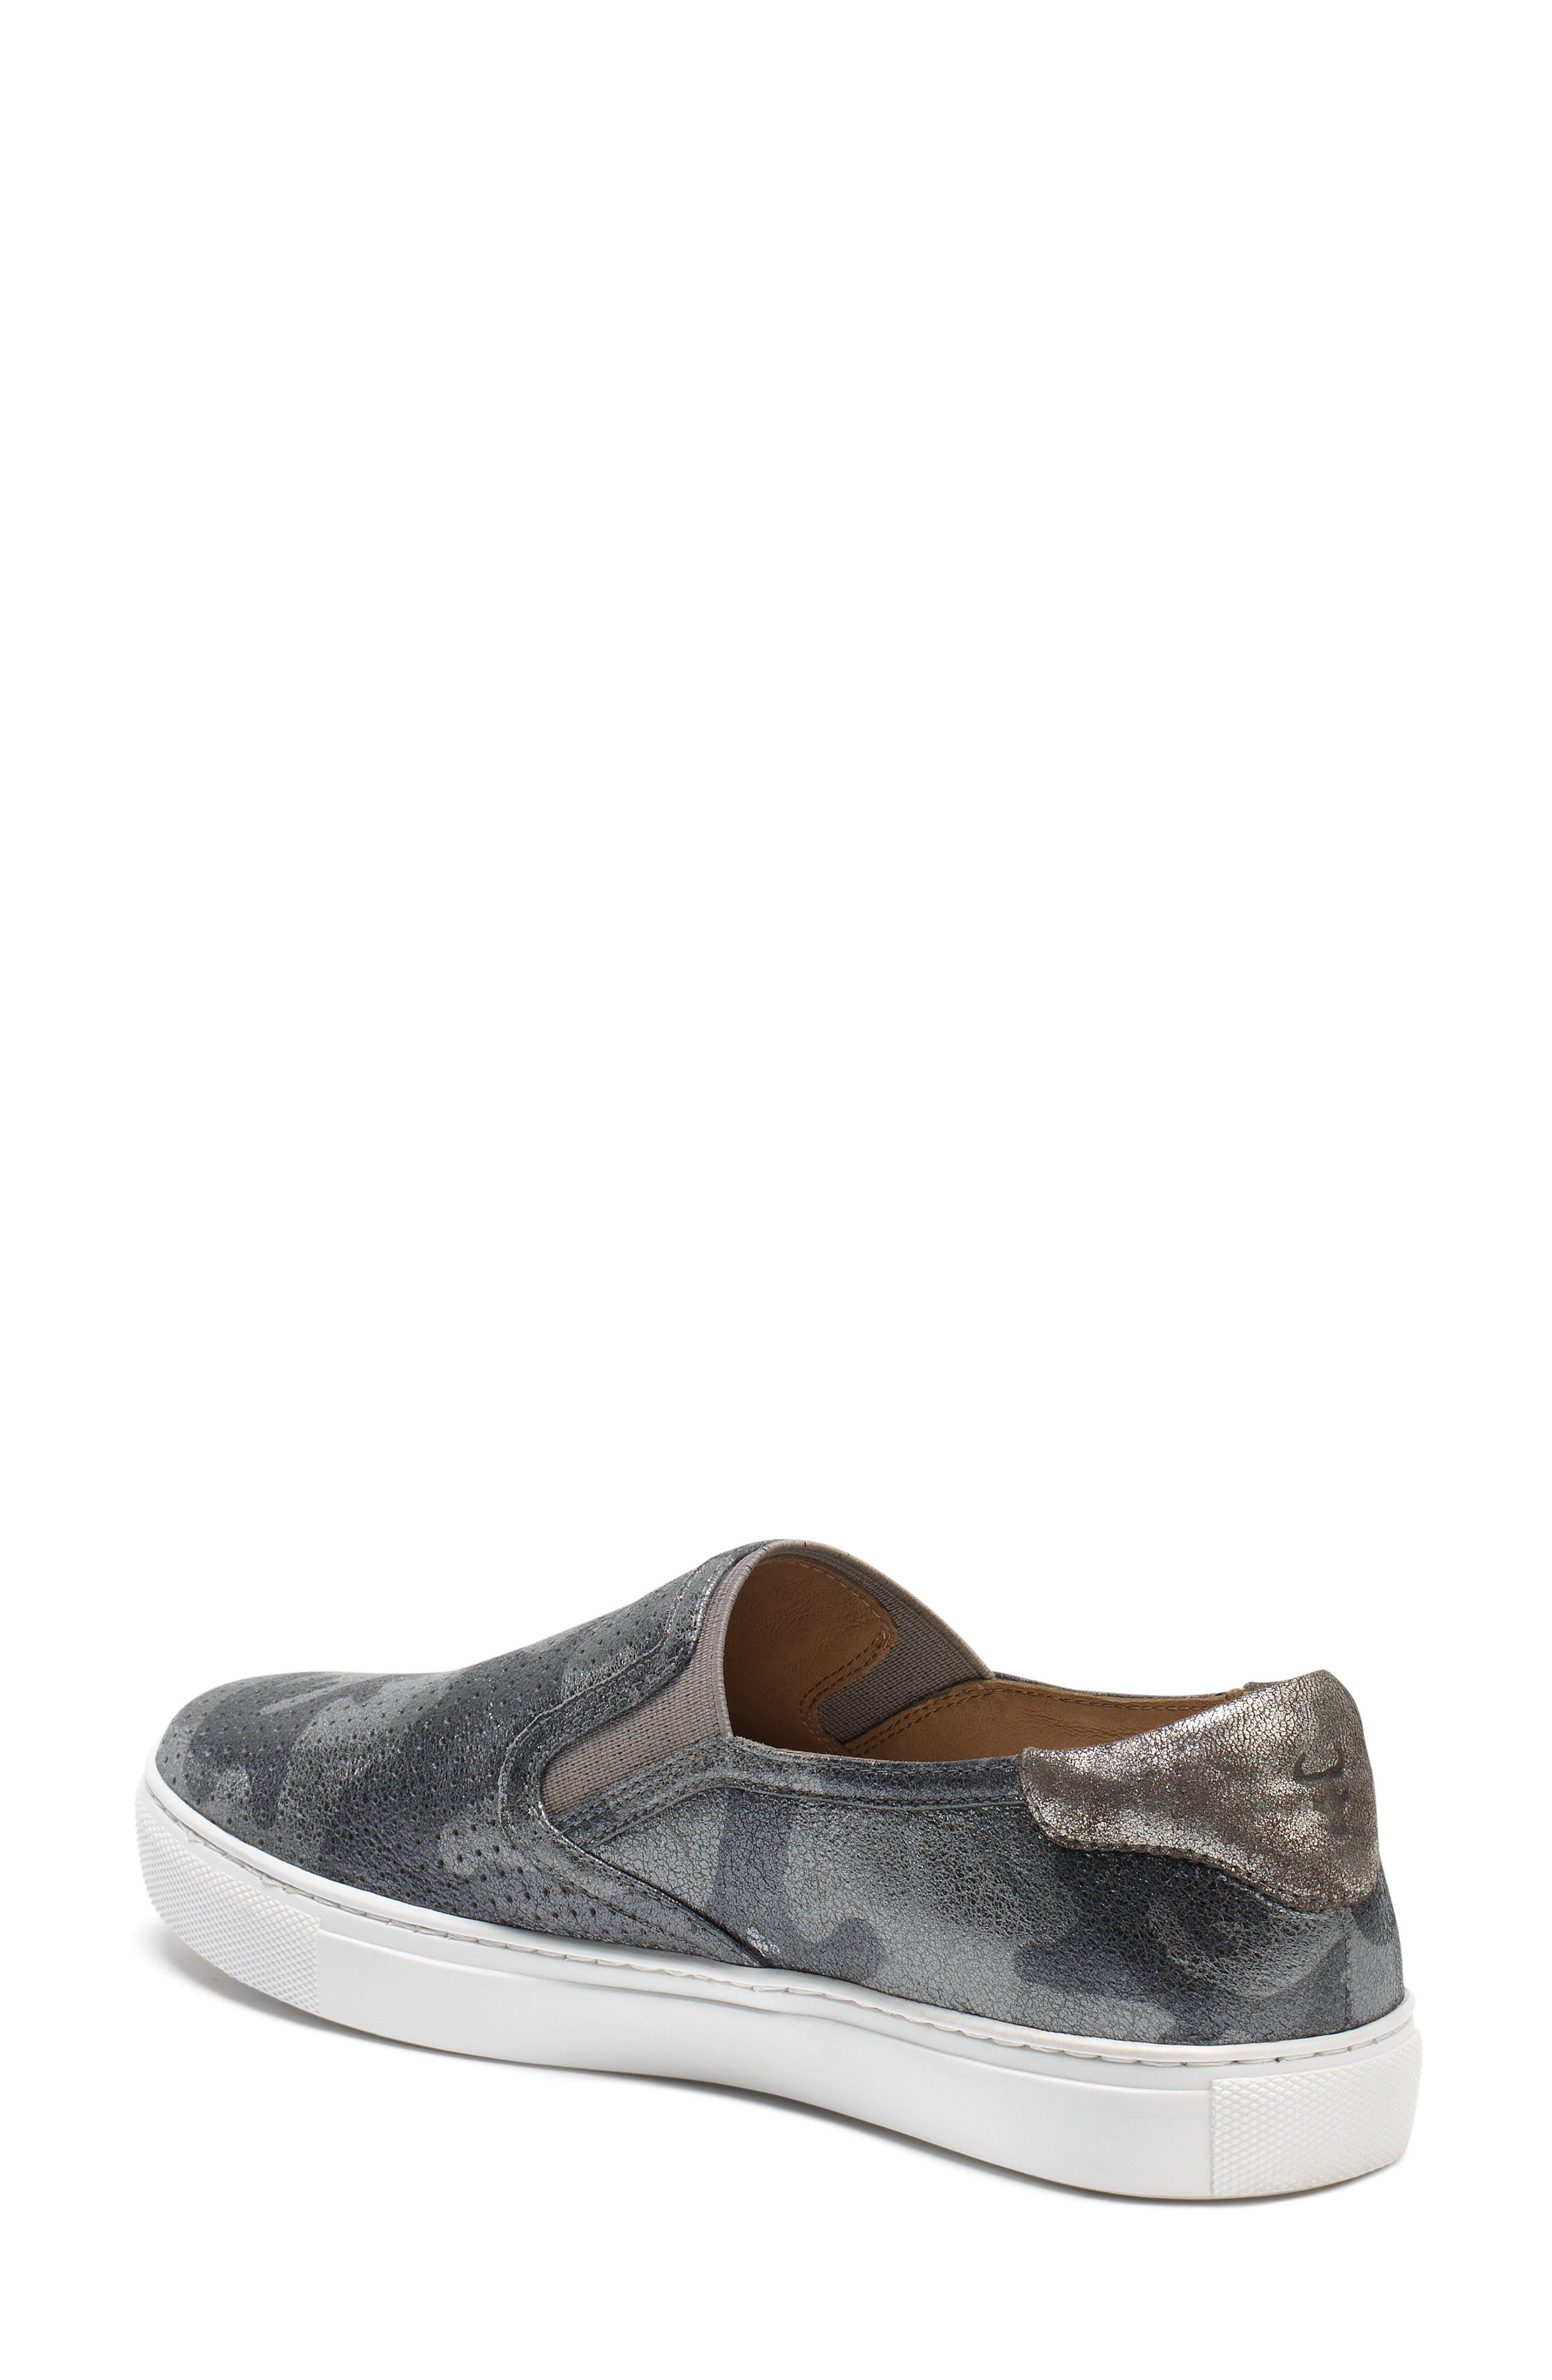 Lillian Water Resistant Slip-On Sneaker,                             Alternate thumbnail 2, color,                             PEWTER CAMO LEATHER